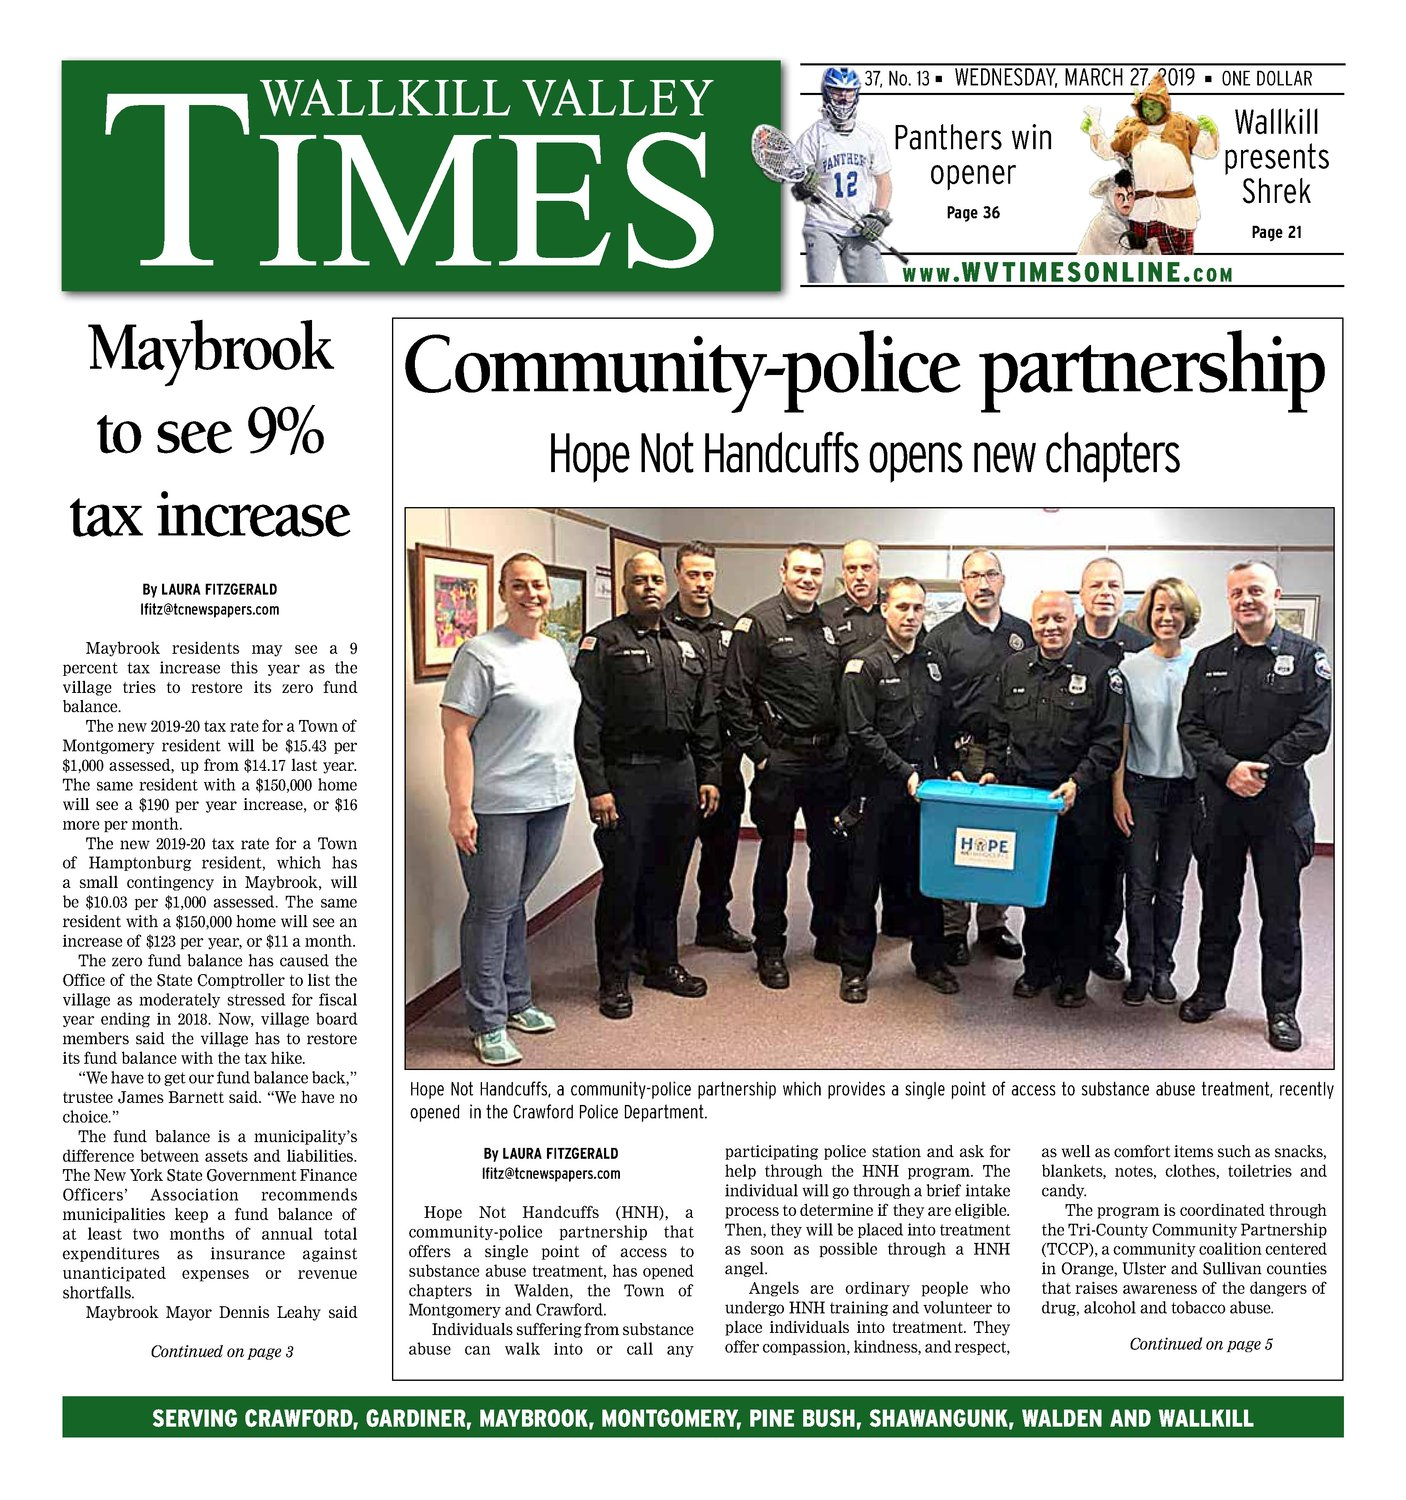 Wallkill Valley Times - March 27, 2019 | My Hudson Valley